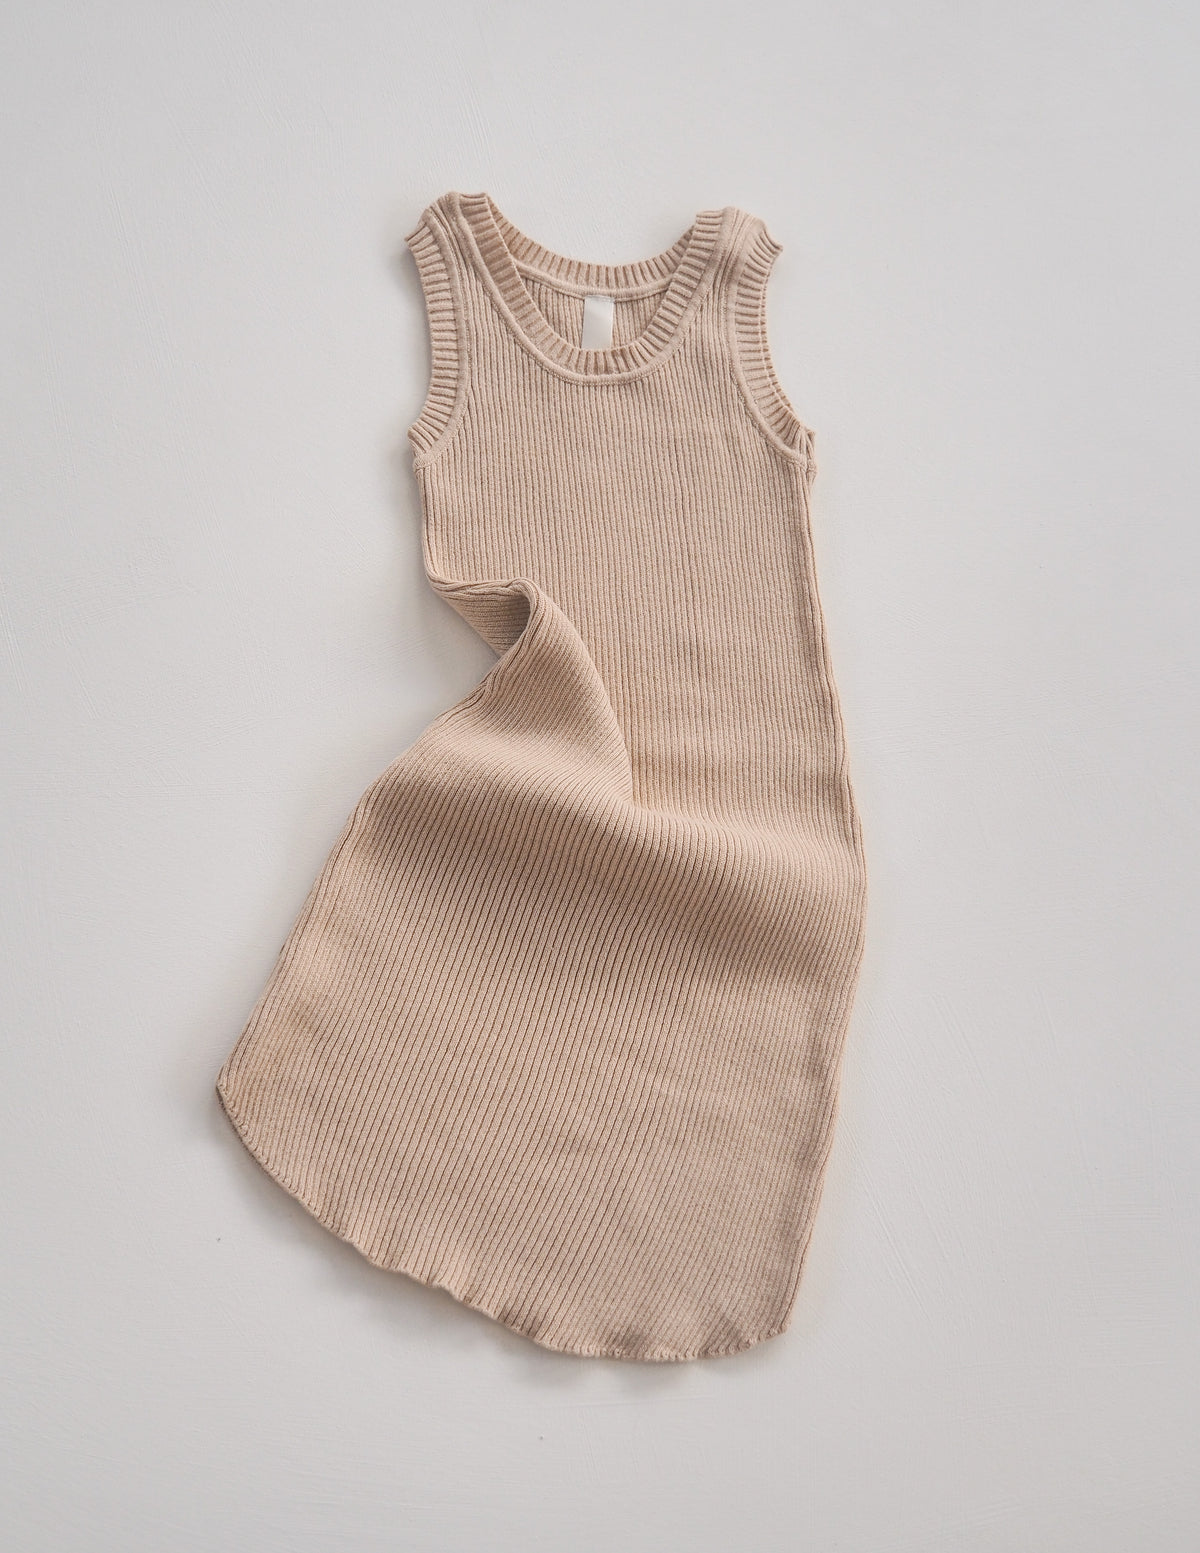 The Grounded Dress - Husk